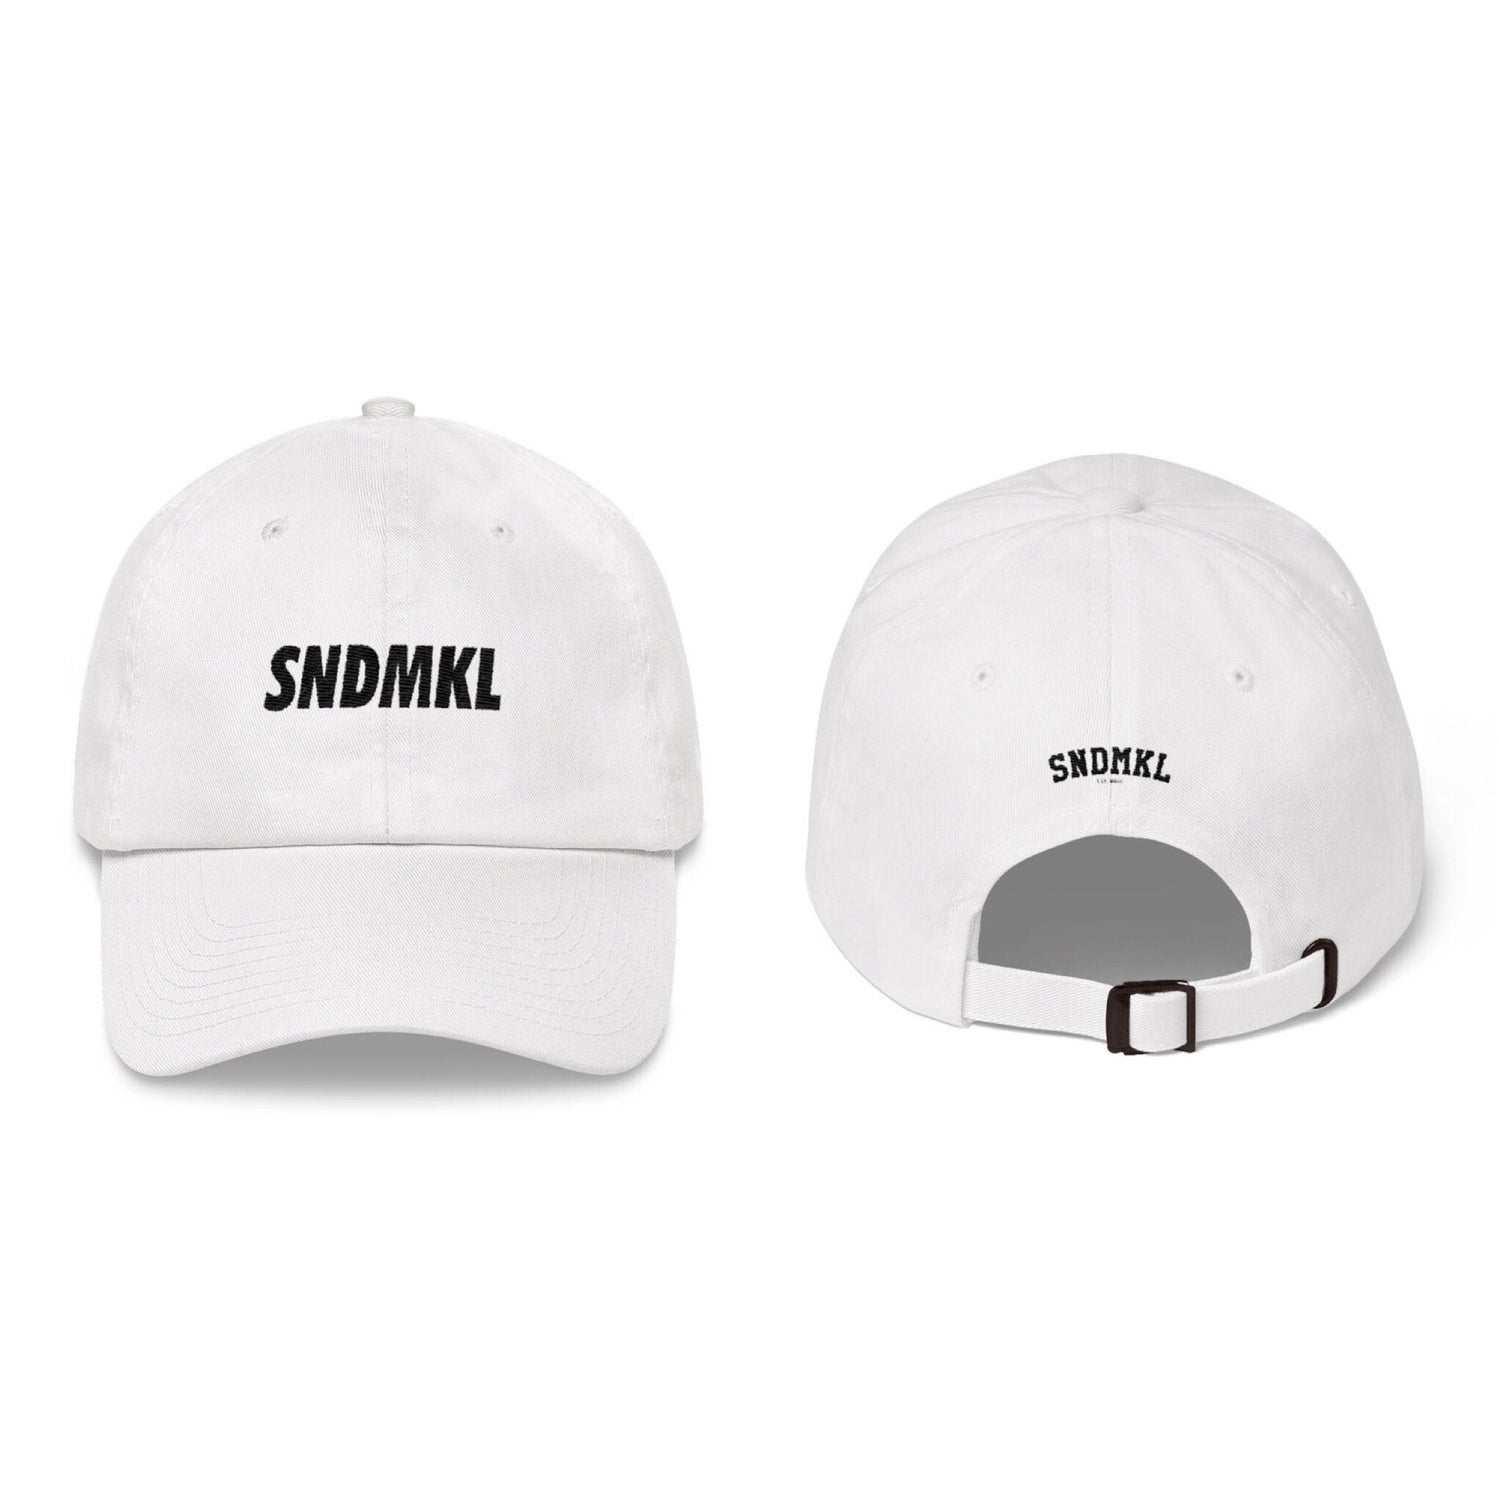 "Image of WHITE: SNDMKL ""Sandamukal"" Dad Hats (Embroidered)"